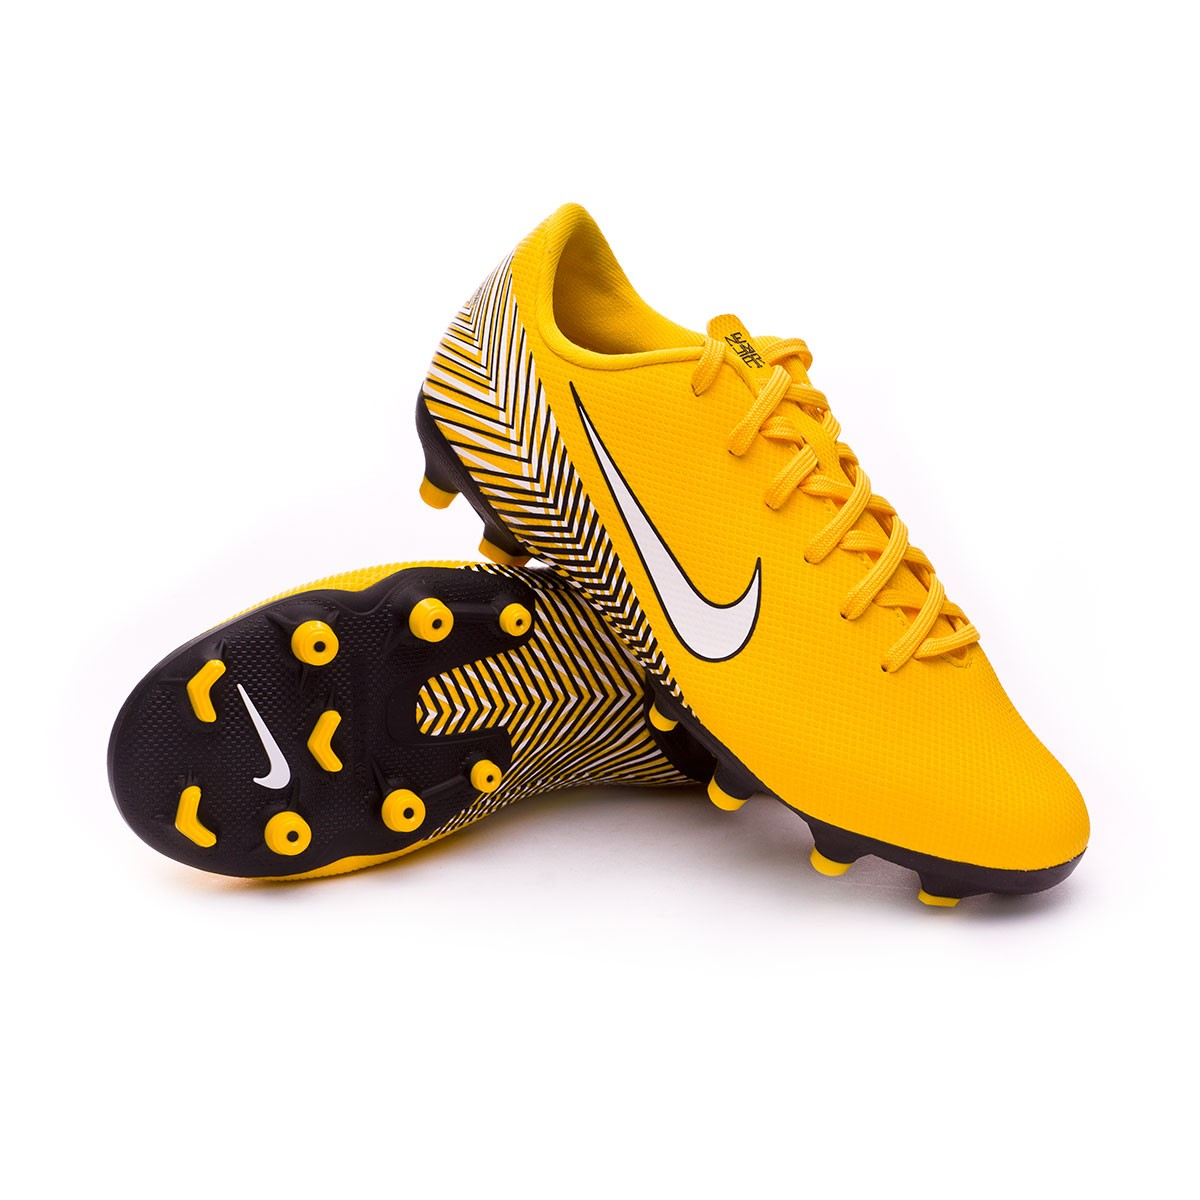 34c932b7f442 Football Boots Nike Kids Mercurial Vapor XII Academy MG Neymar  Yellow-Dinamic yellow-Black - Football store Fútbol Emotion